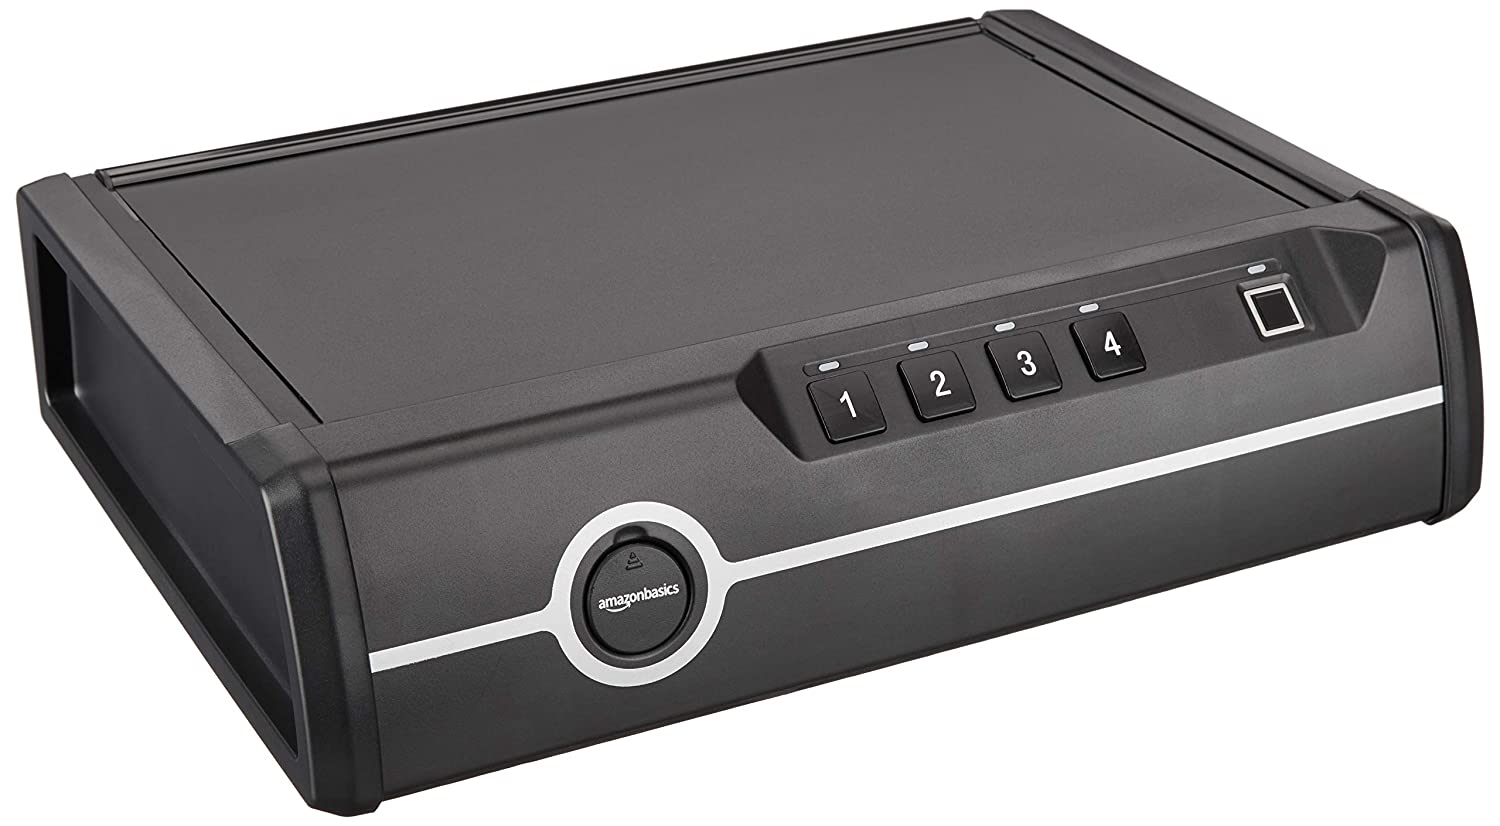 AmazonBasics Deluxe Quick-Access Dual Firearm Safety Device with Biometric Fingerprint Lock